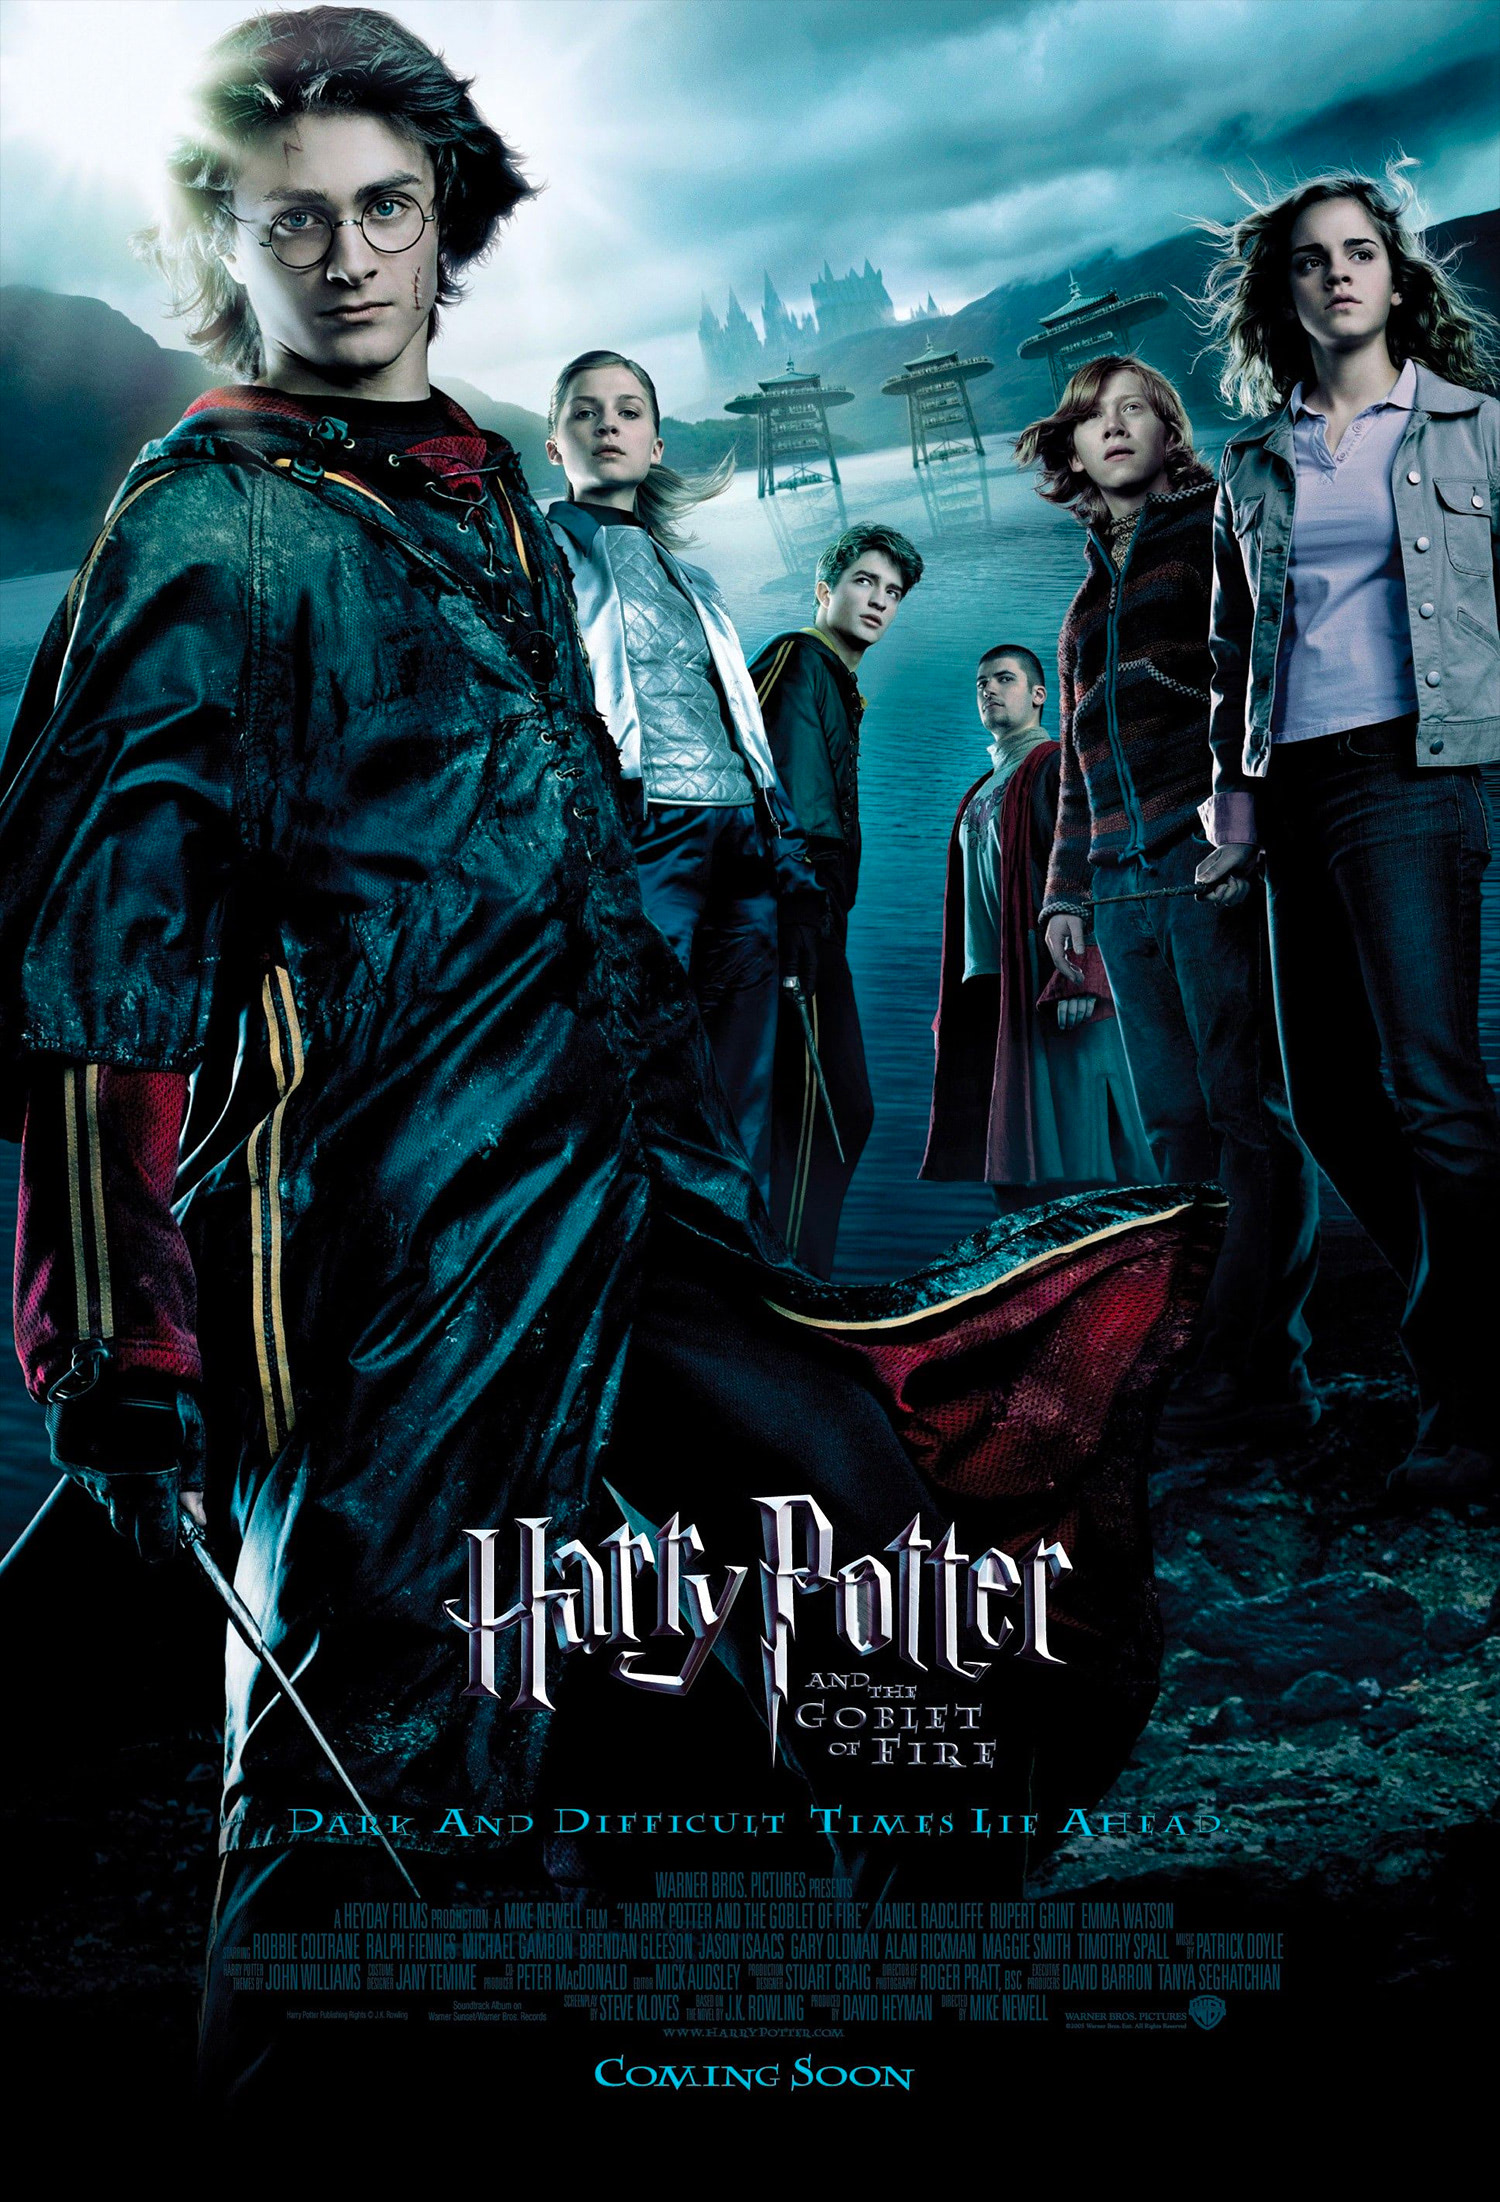 'Goblet of Fire' theatrical poster #2